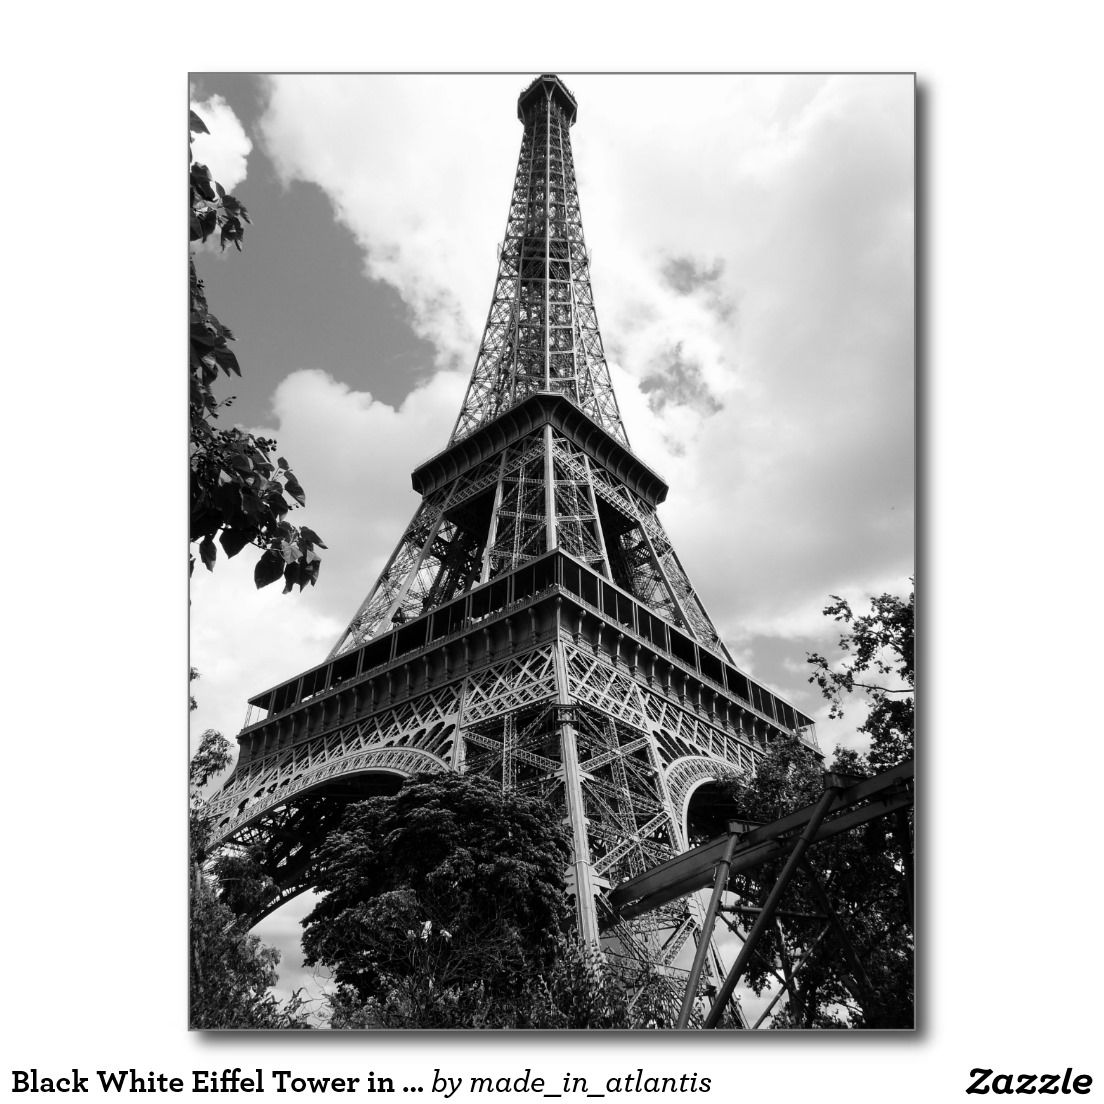 Black White Eiffel Tower in Paris Postcard